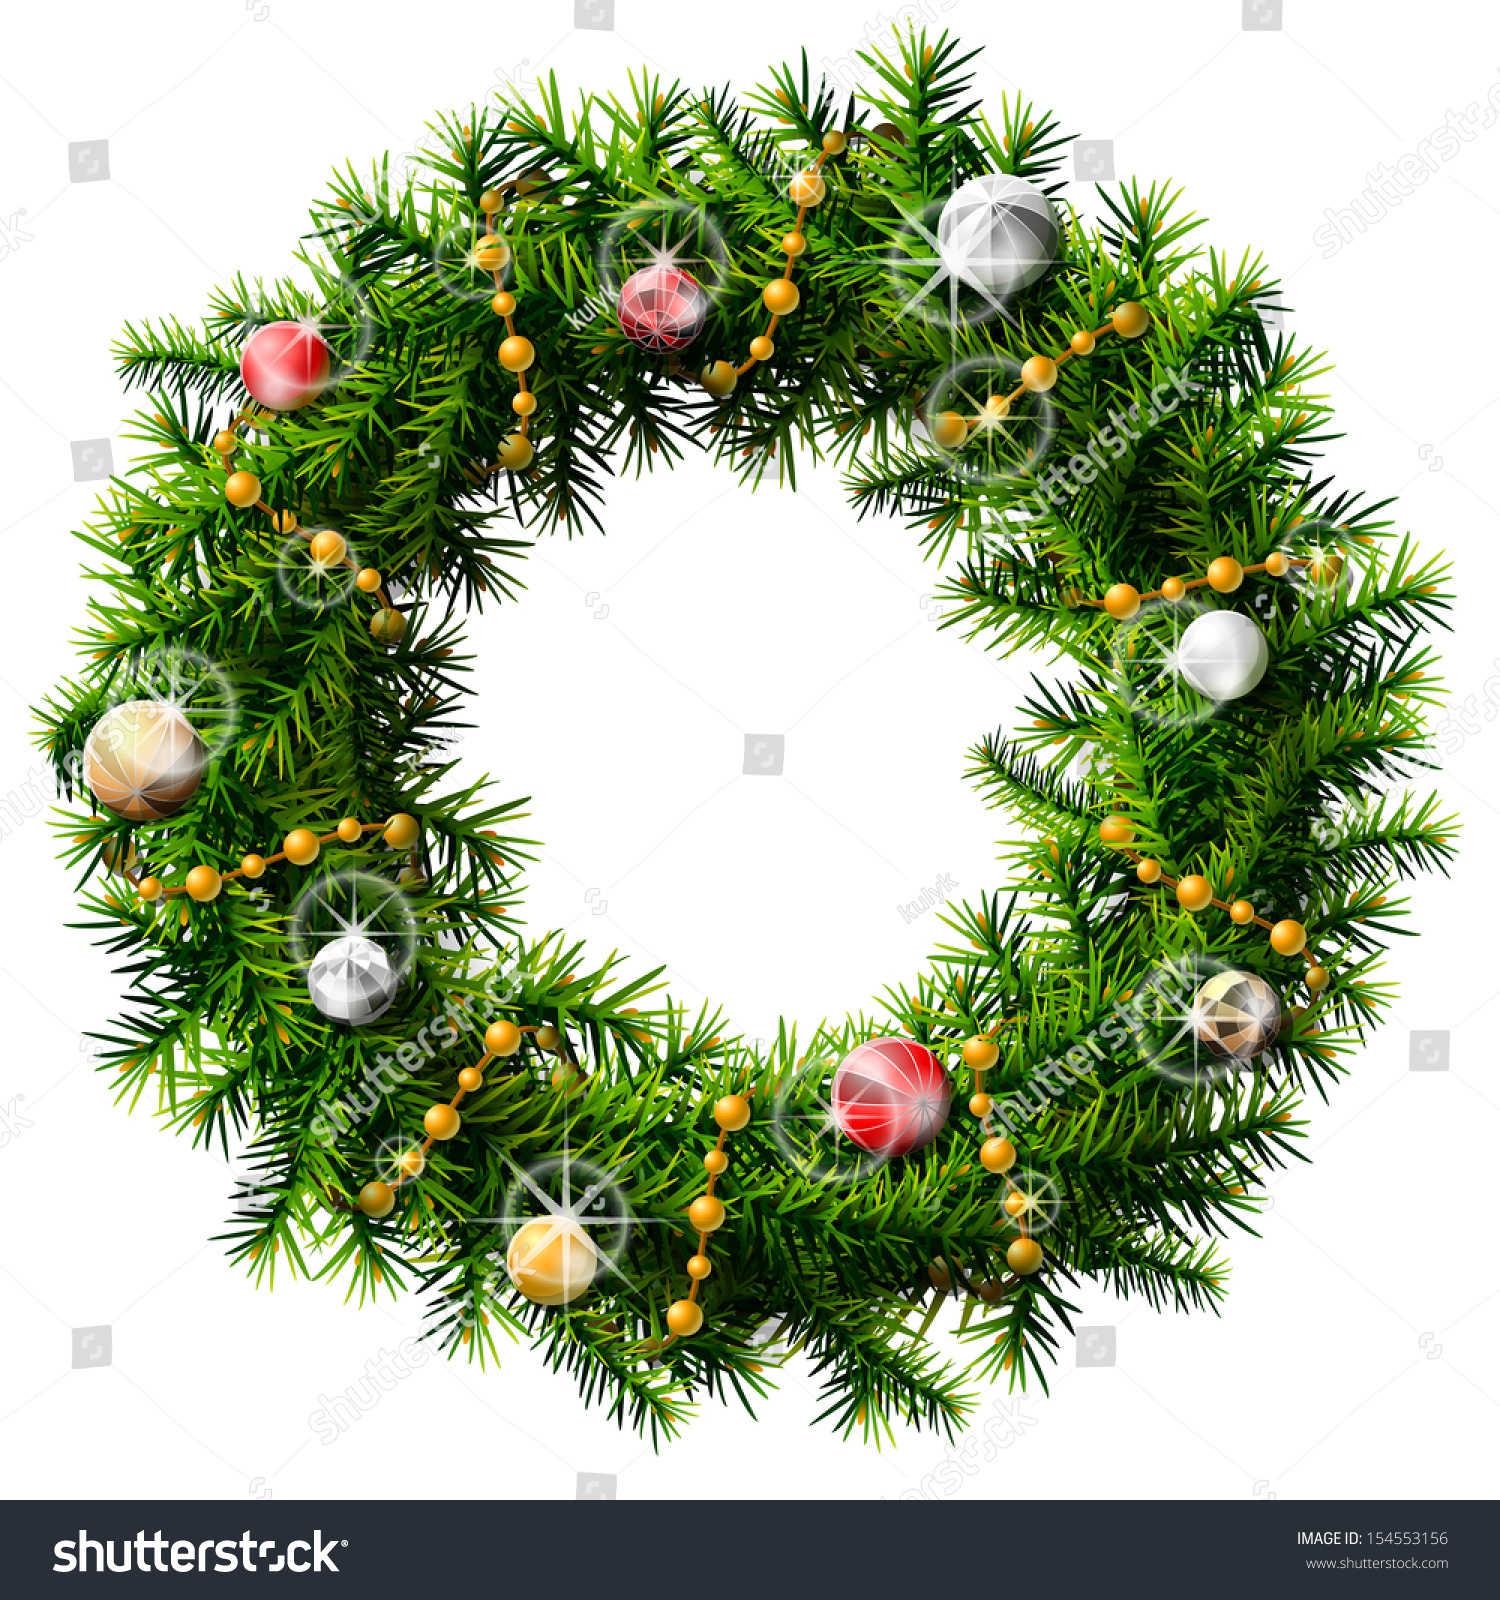 Pine Branches For Decoration Christmas Wreath With Decorative Beads And Balls Wreath Of Pine